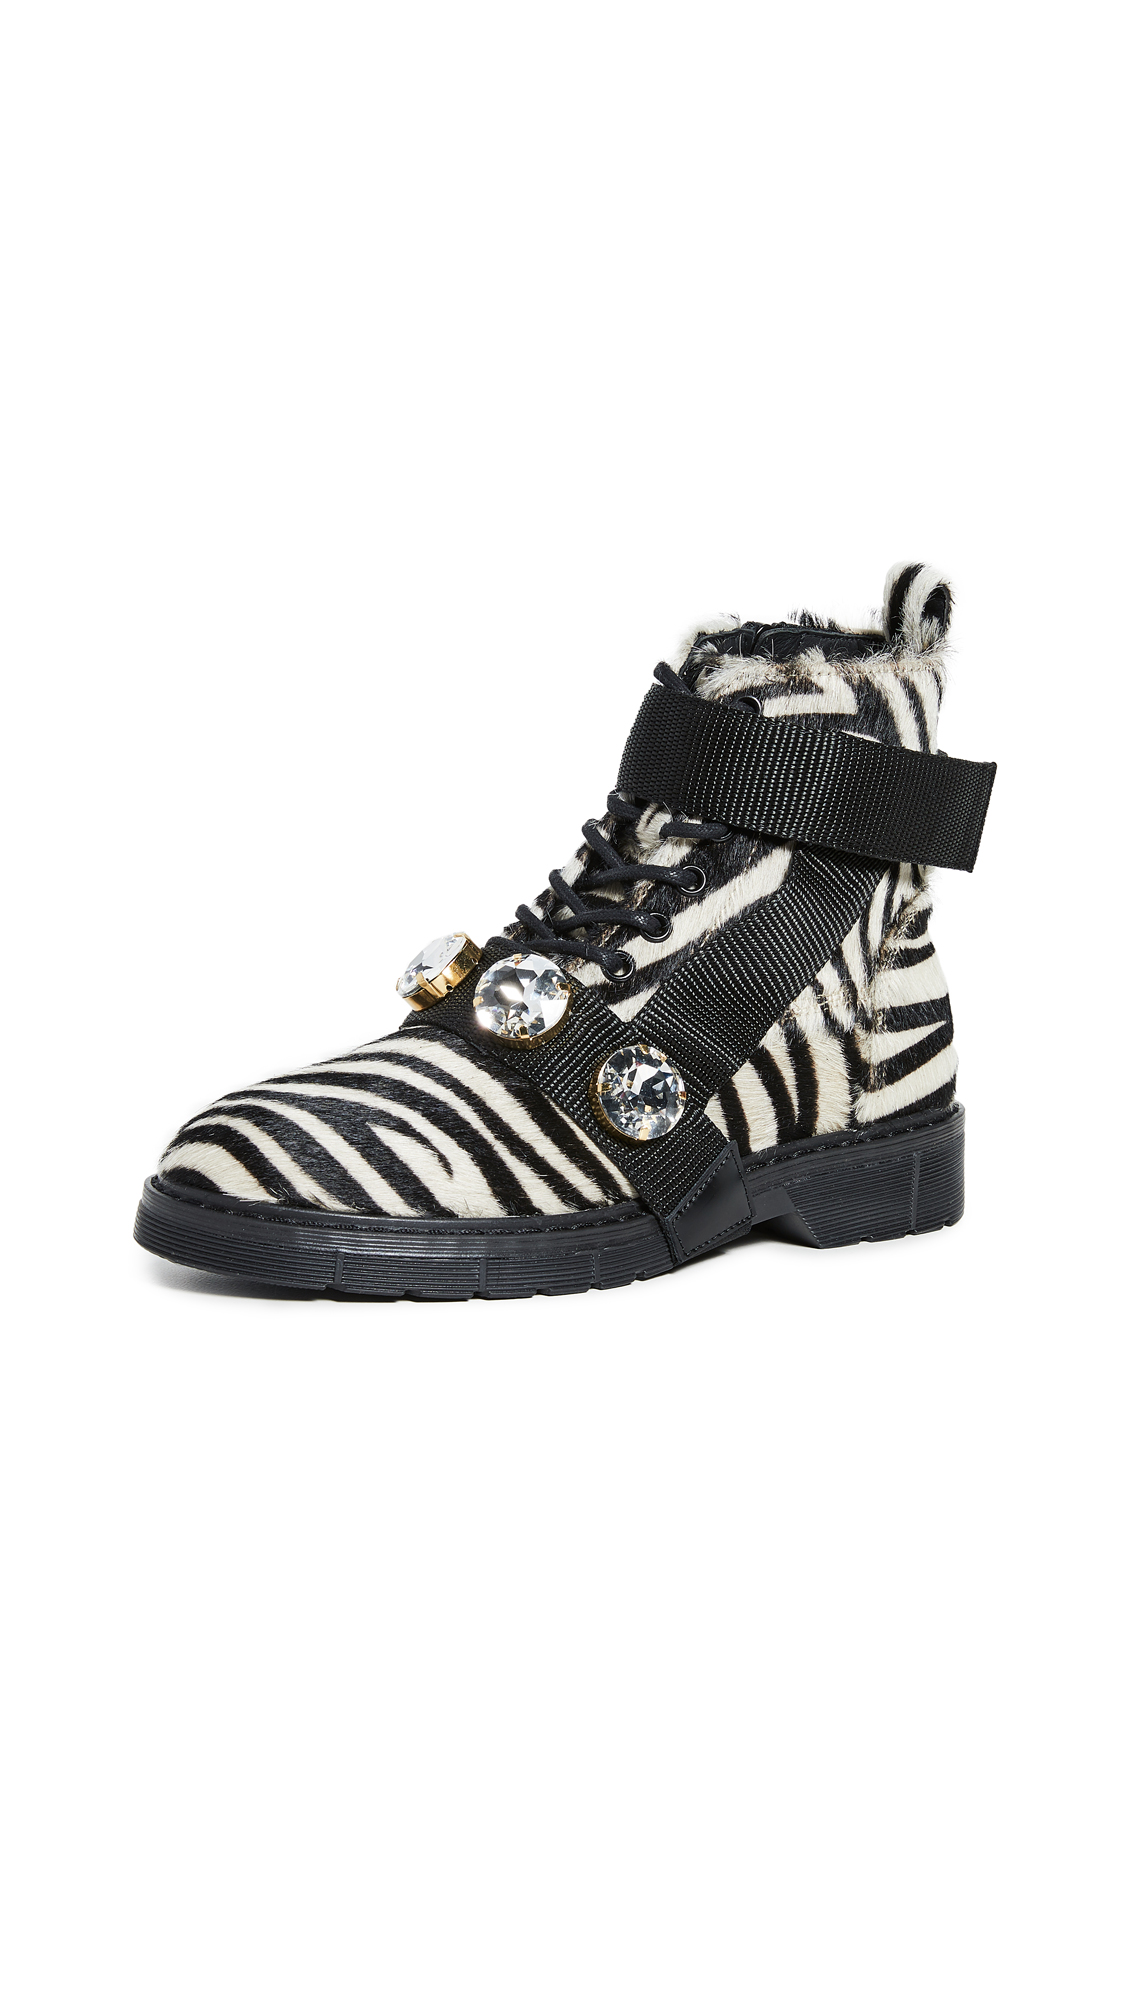 Polly Plume Lara Zoo Boots – 70% Off Sale